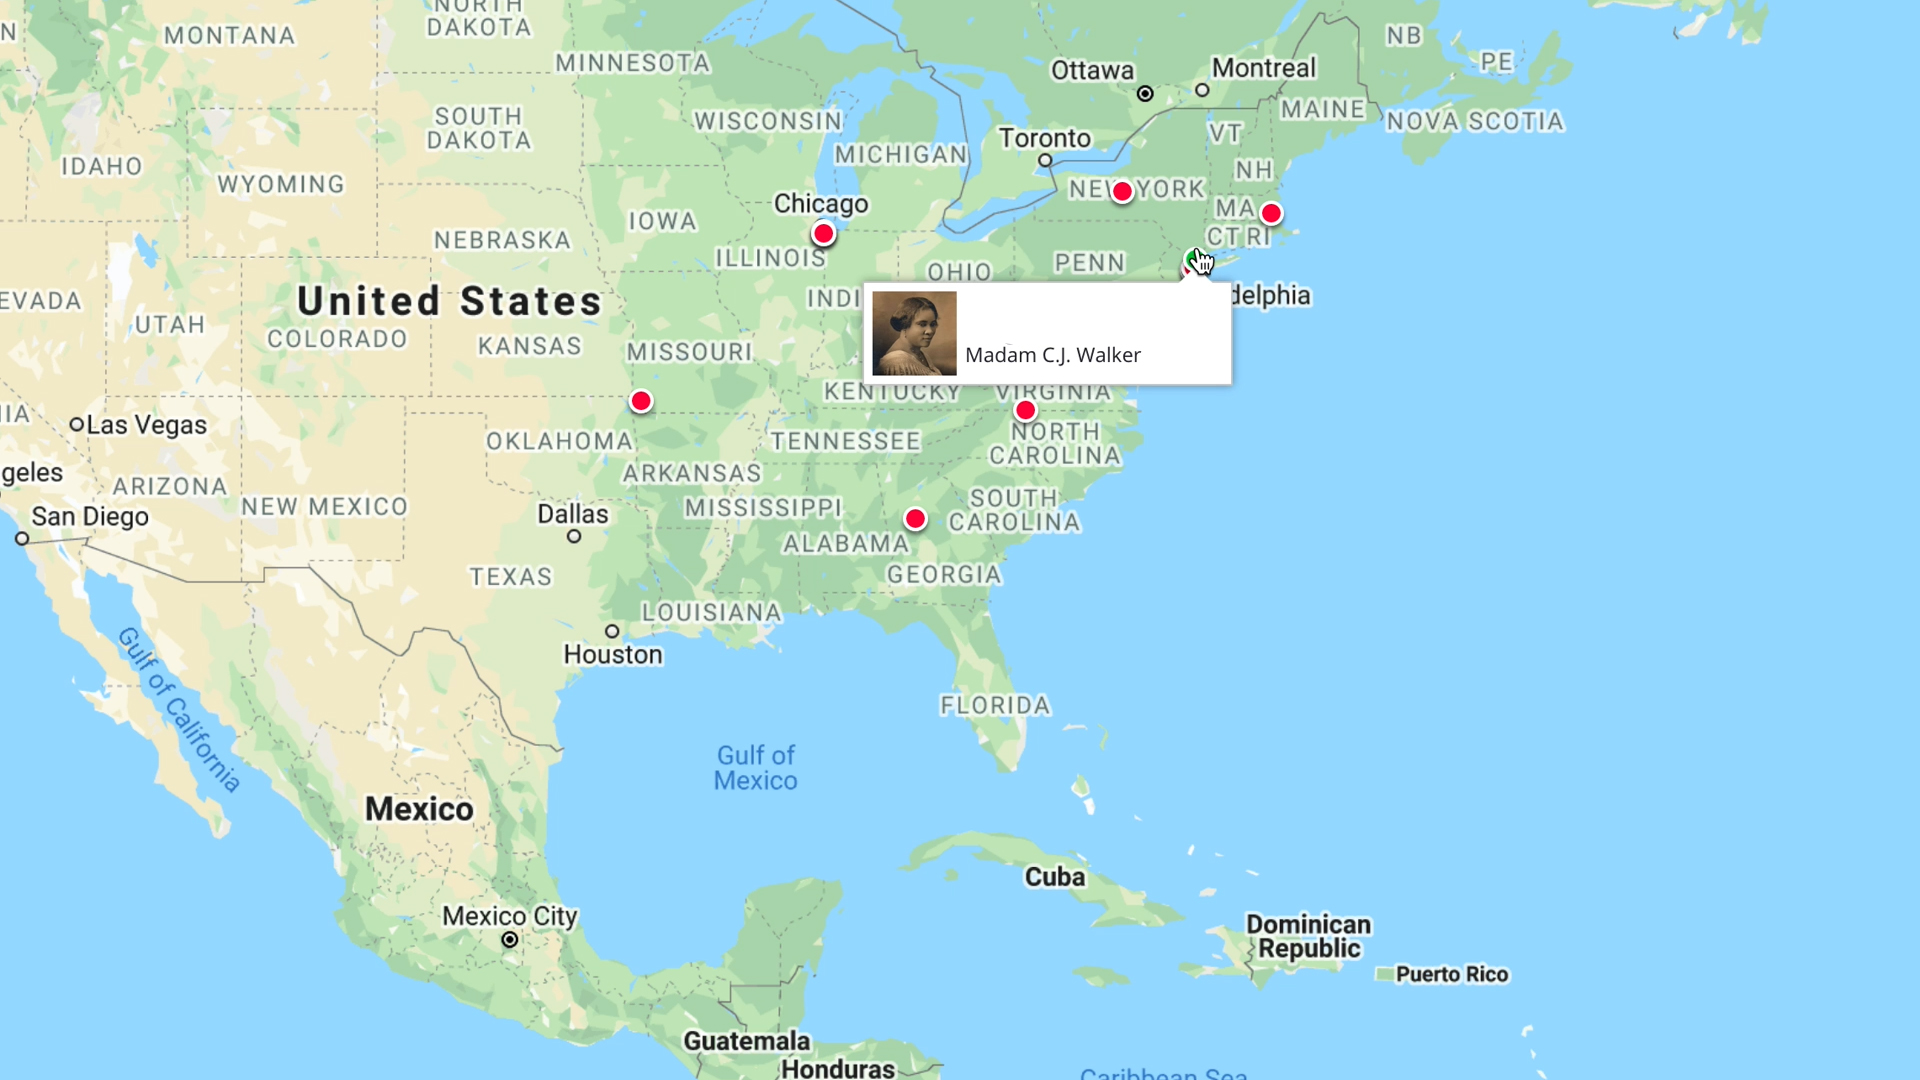 Screenshot of map of the United States from the Blacks Across America application created during Zillow Hack Week 20